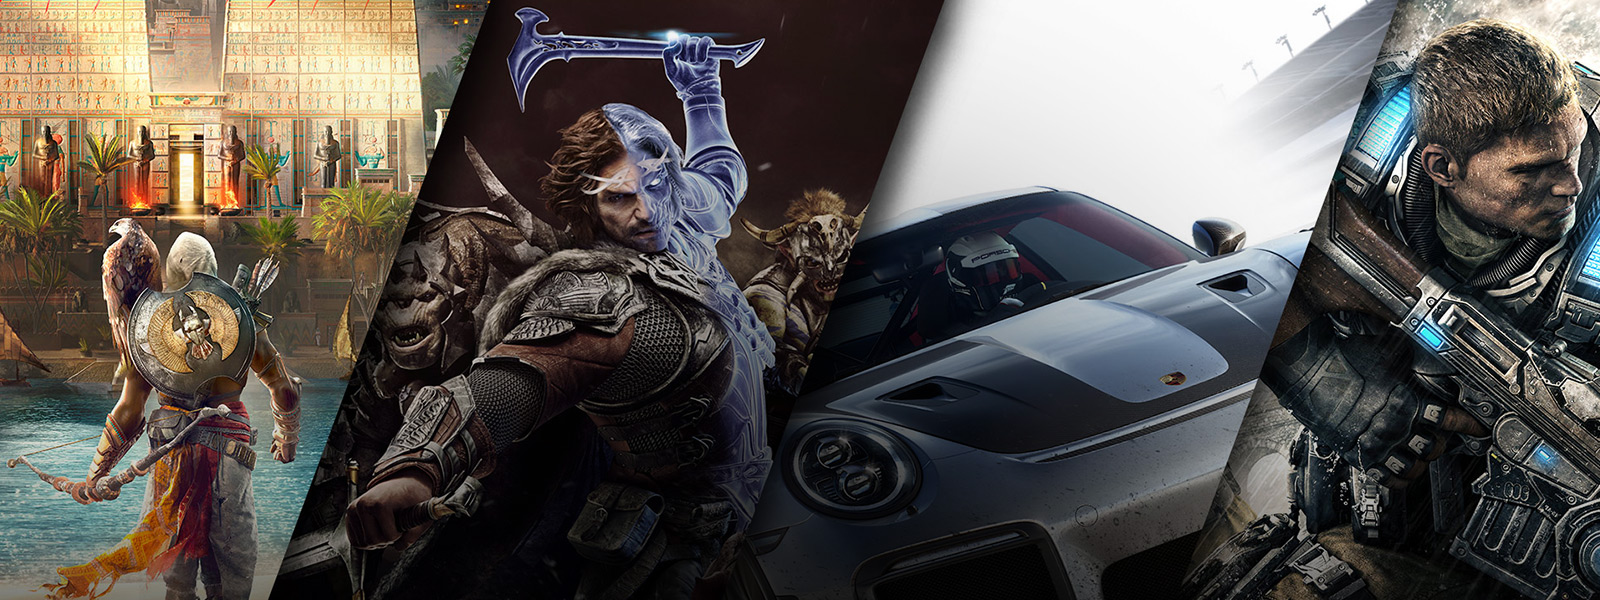 Assassin's Creed: Origins - Shadow of War - Forza 7 - Gears of War 4 kolajı